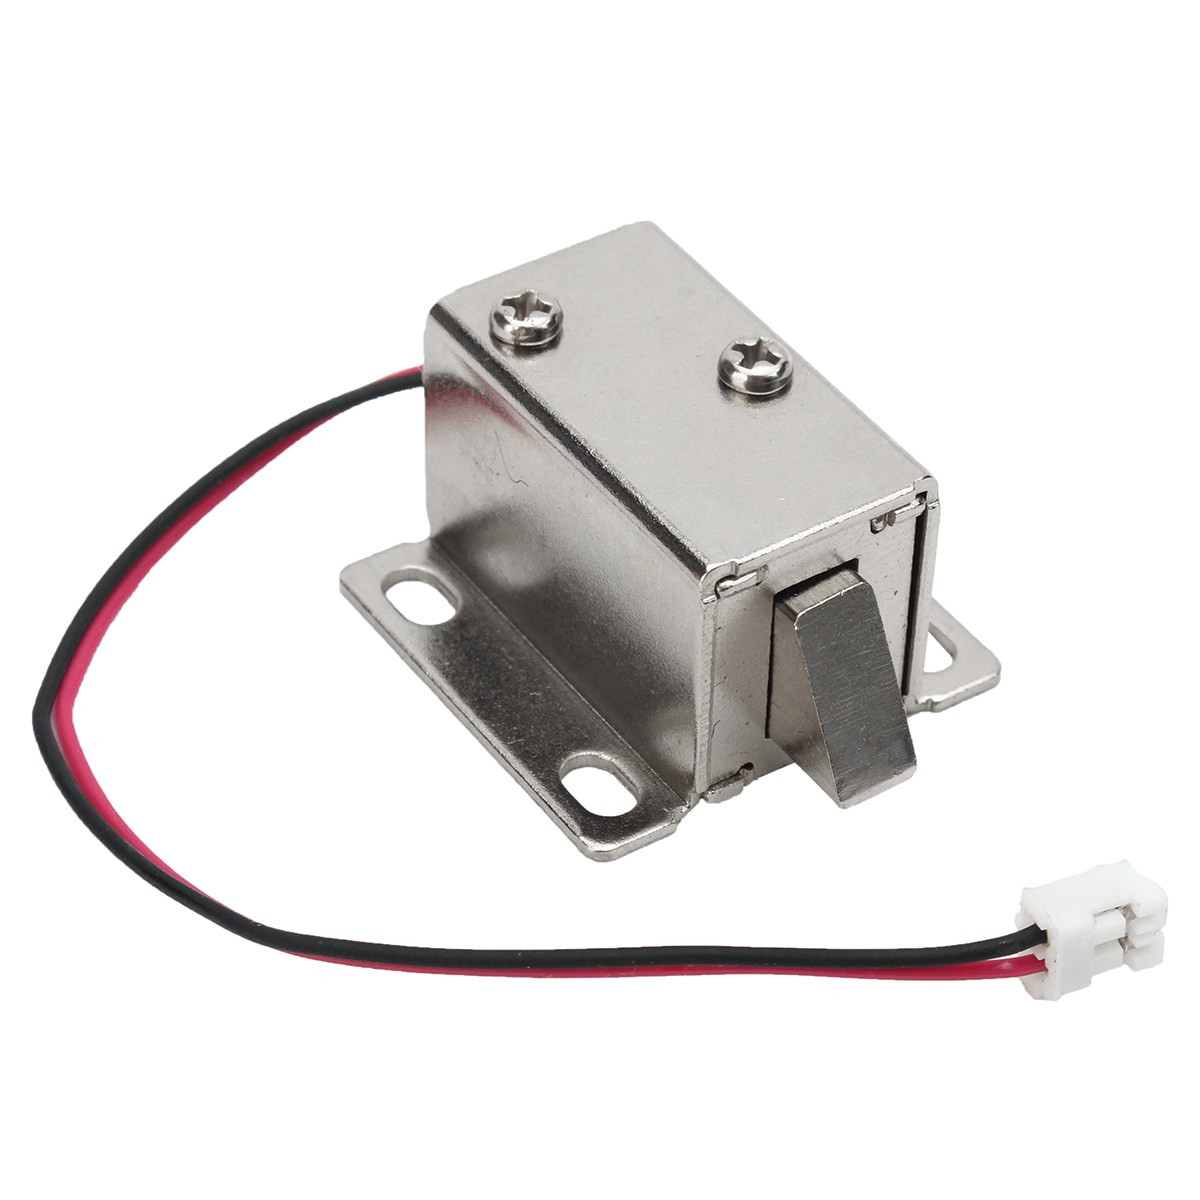 NEW Safurance Electronic Lock Catch Door Gate 12V/0.43A Electric Release Assembly Solenoid Access Control new safurance welders dual leather